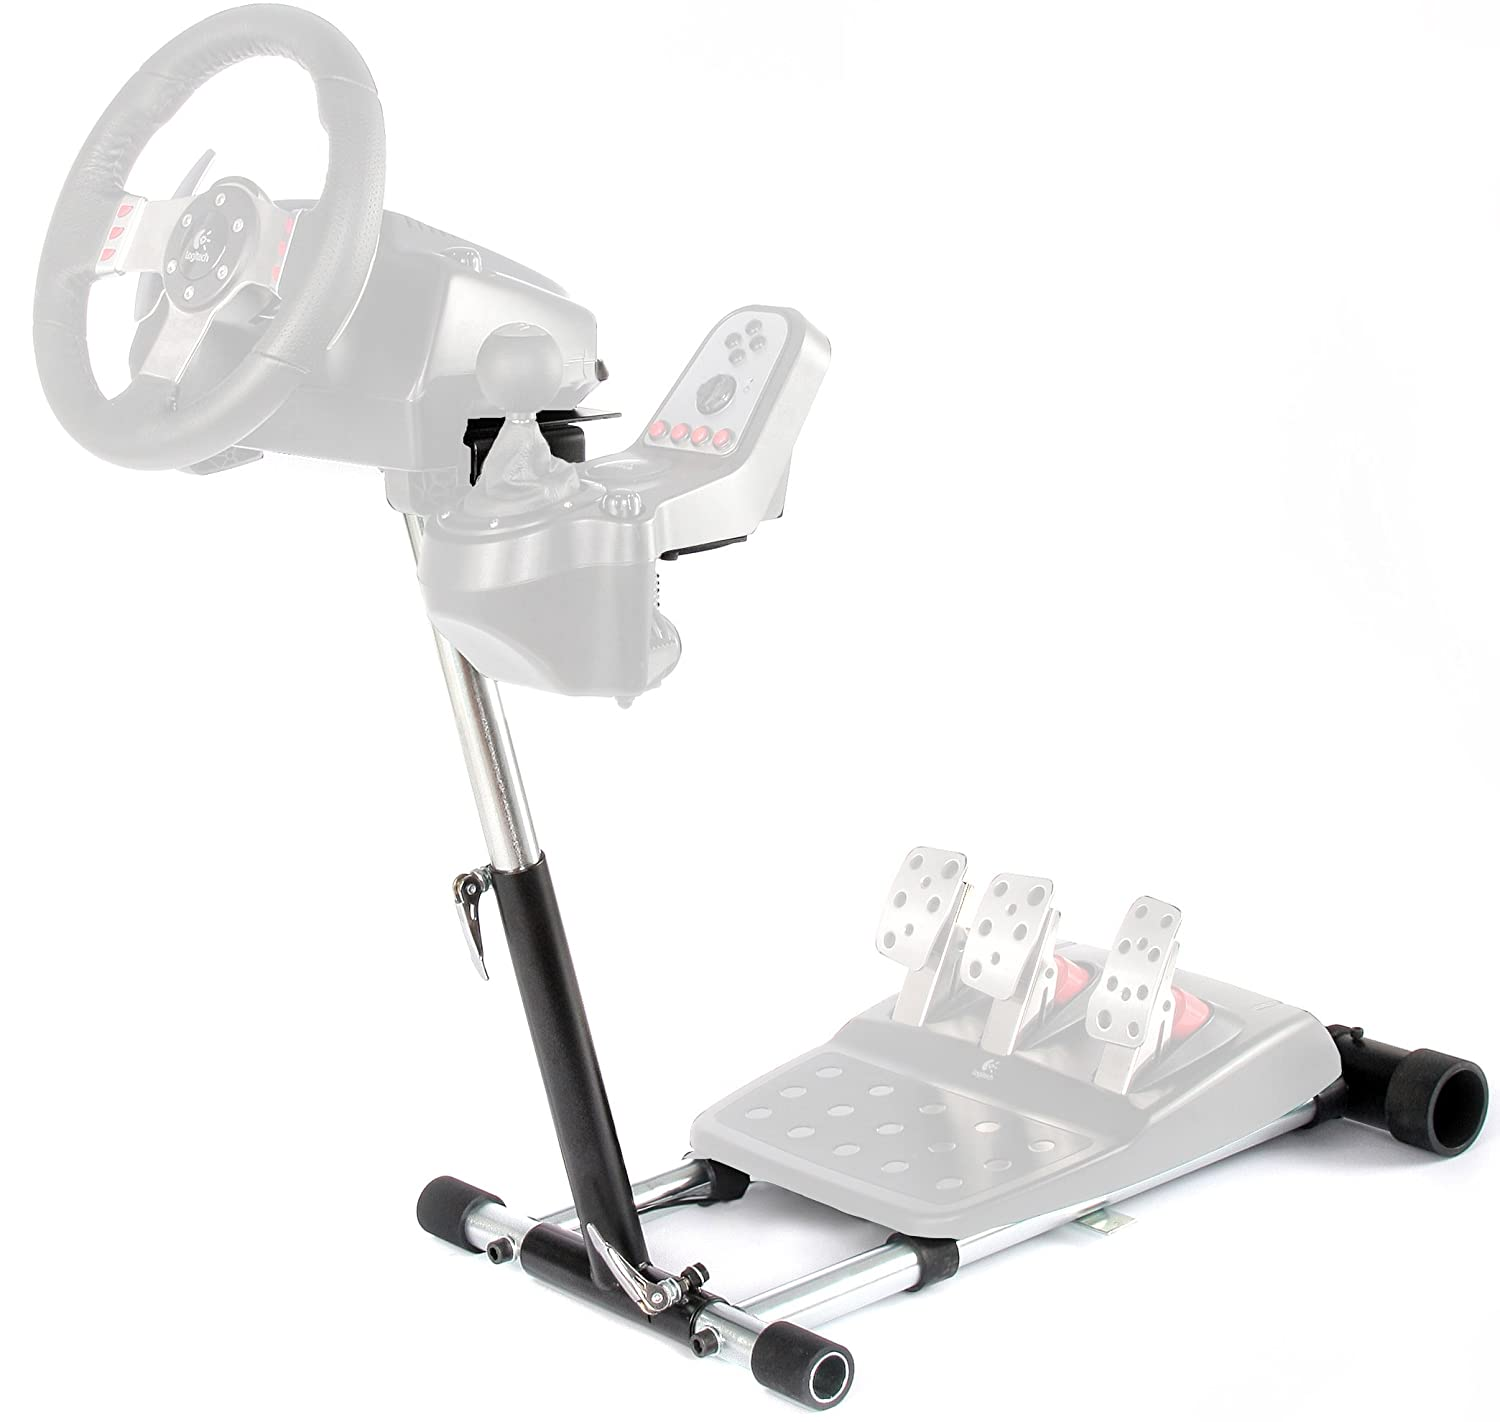 d7d5d6c10fb Wheel Stand Pro G Racing Steering Wheel Stand Compatible with Logitech G29,  G920, G27 & G25 Wheels, Deluxe, Original V2. Wheel and Pedals Not Included.